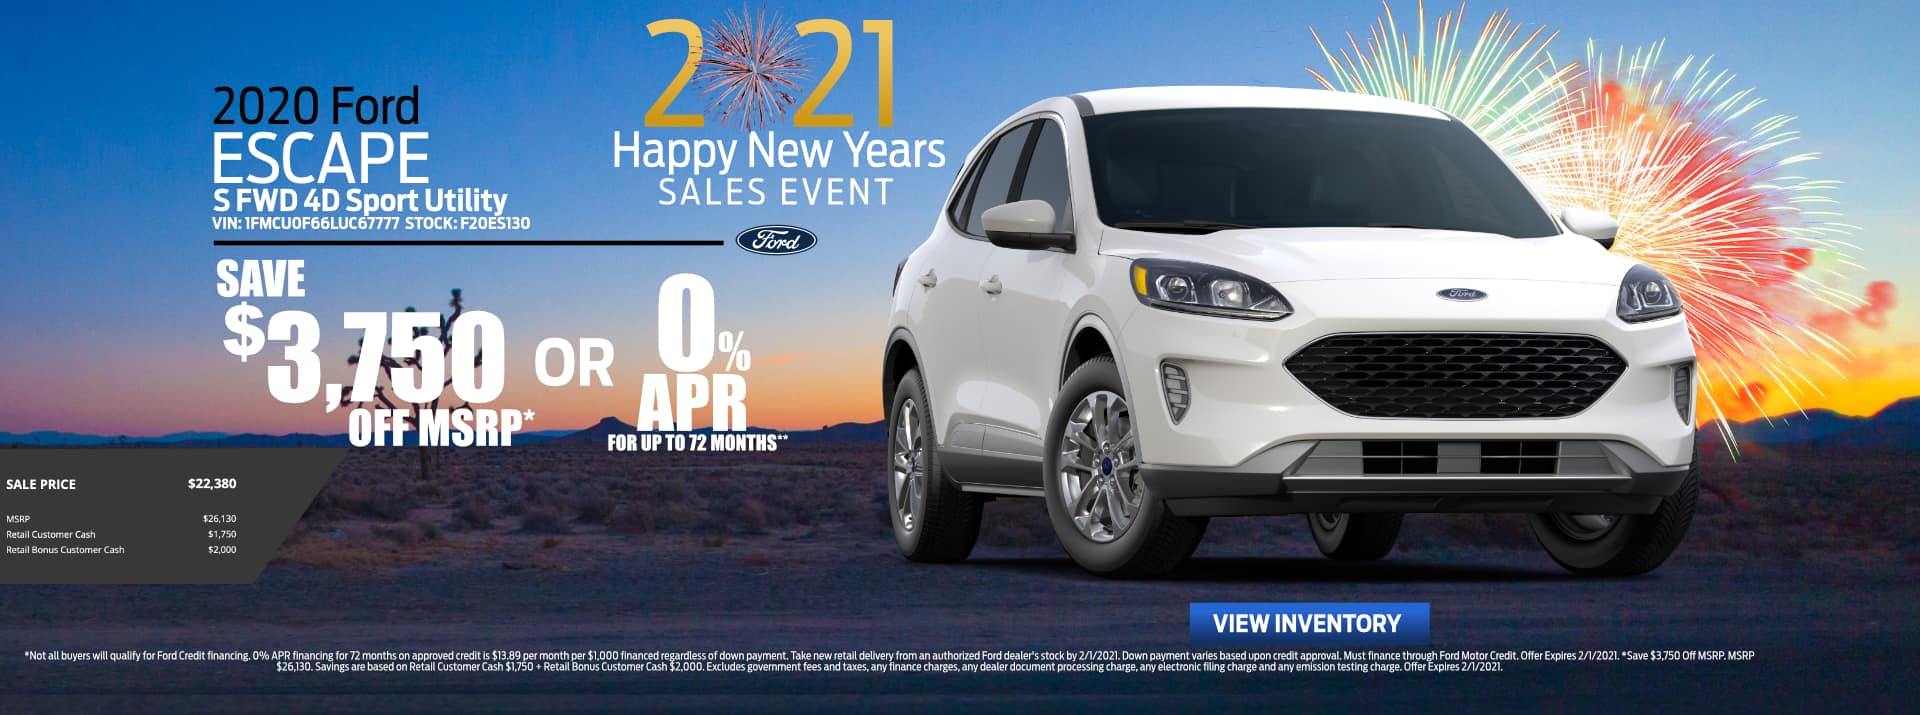 Revised_January-2021 Ford Escape Fiesta Ford